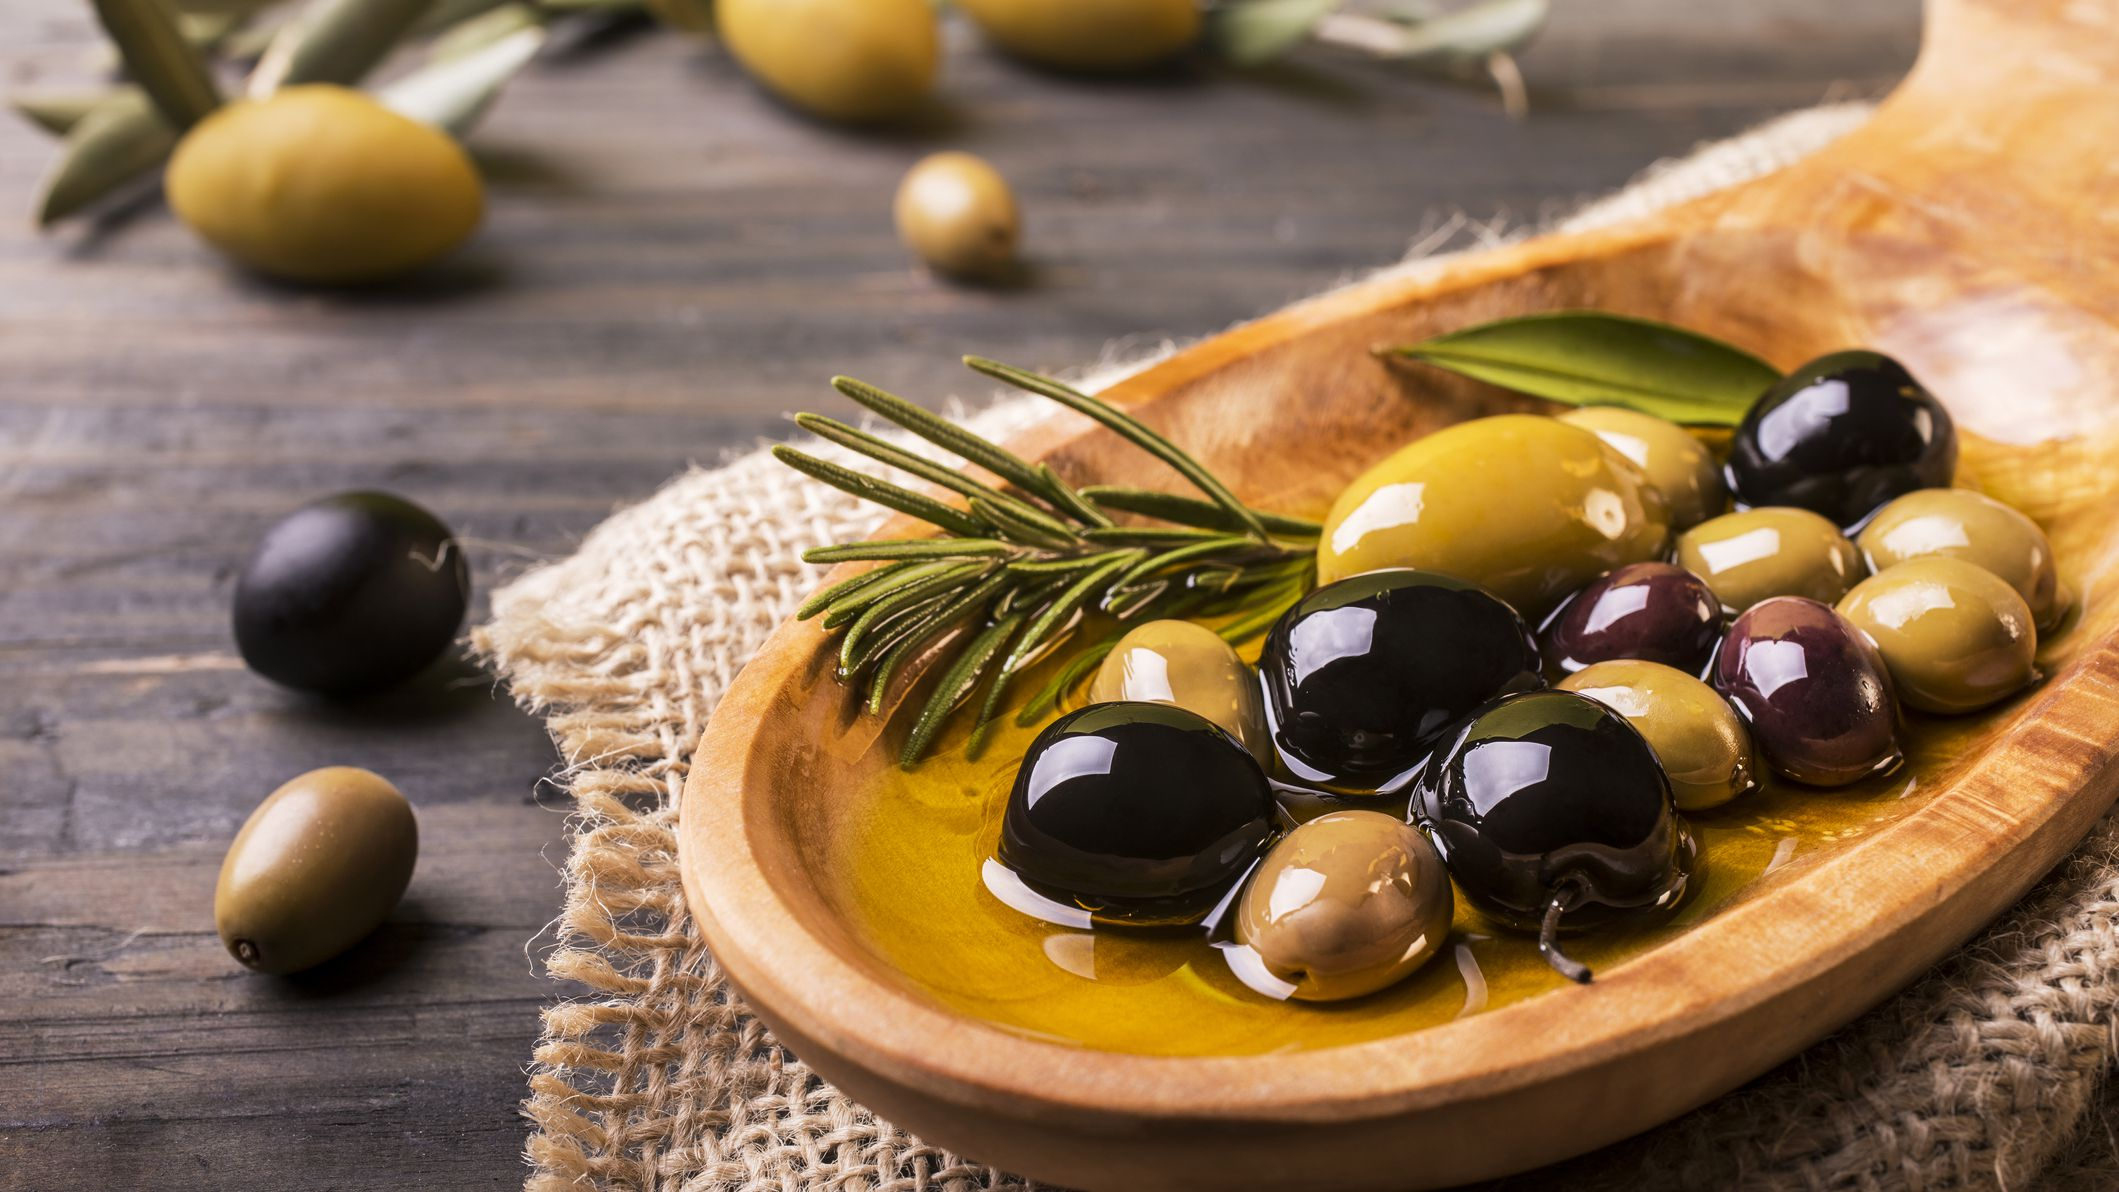 Foods High in Unsaturated Fats to Lower Cholesterol